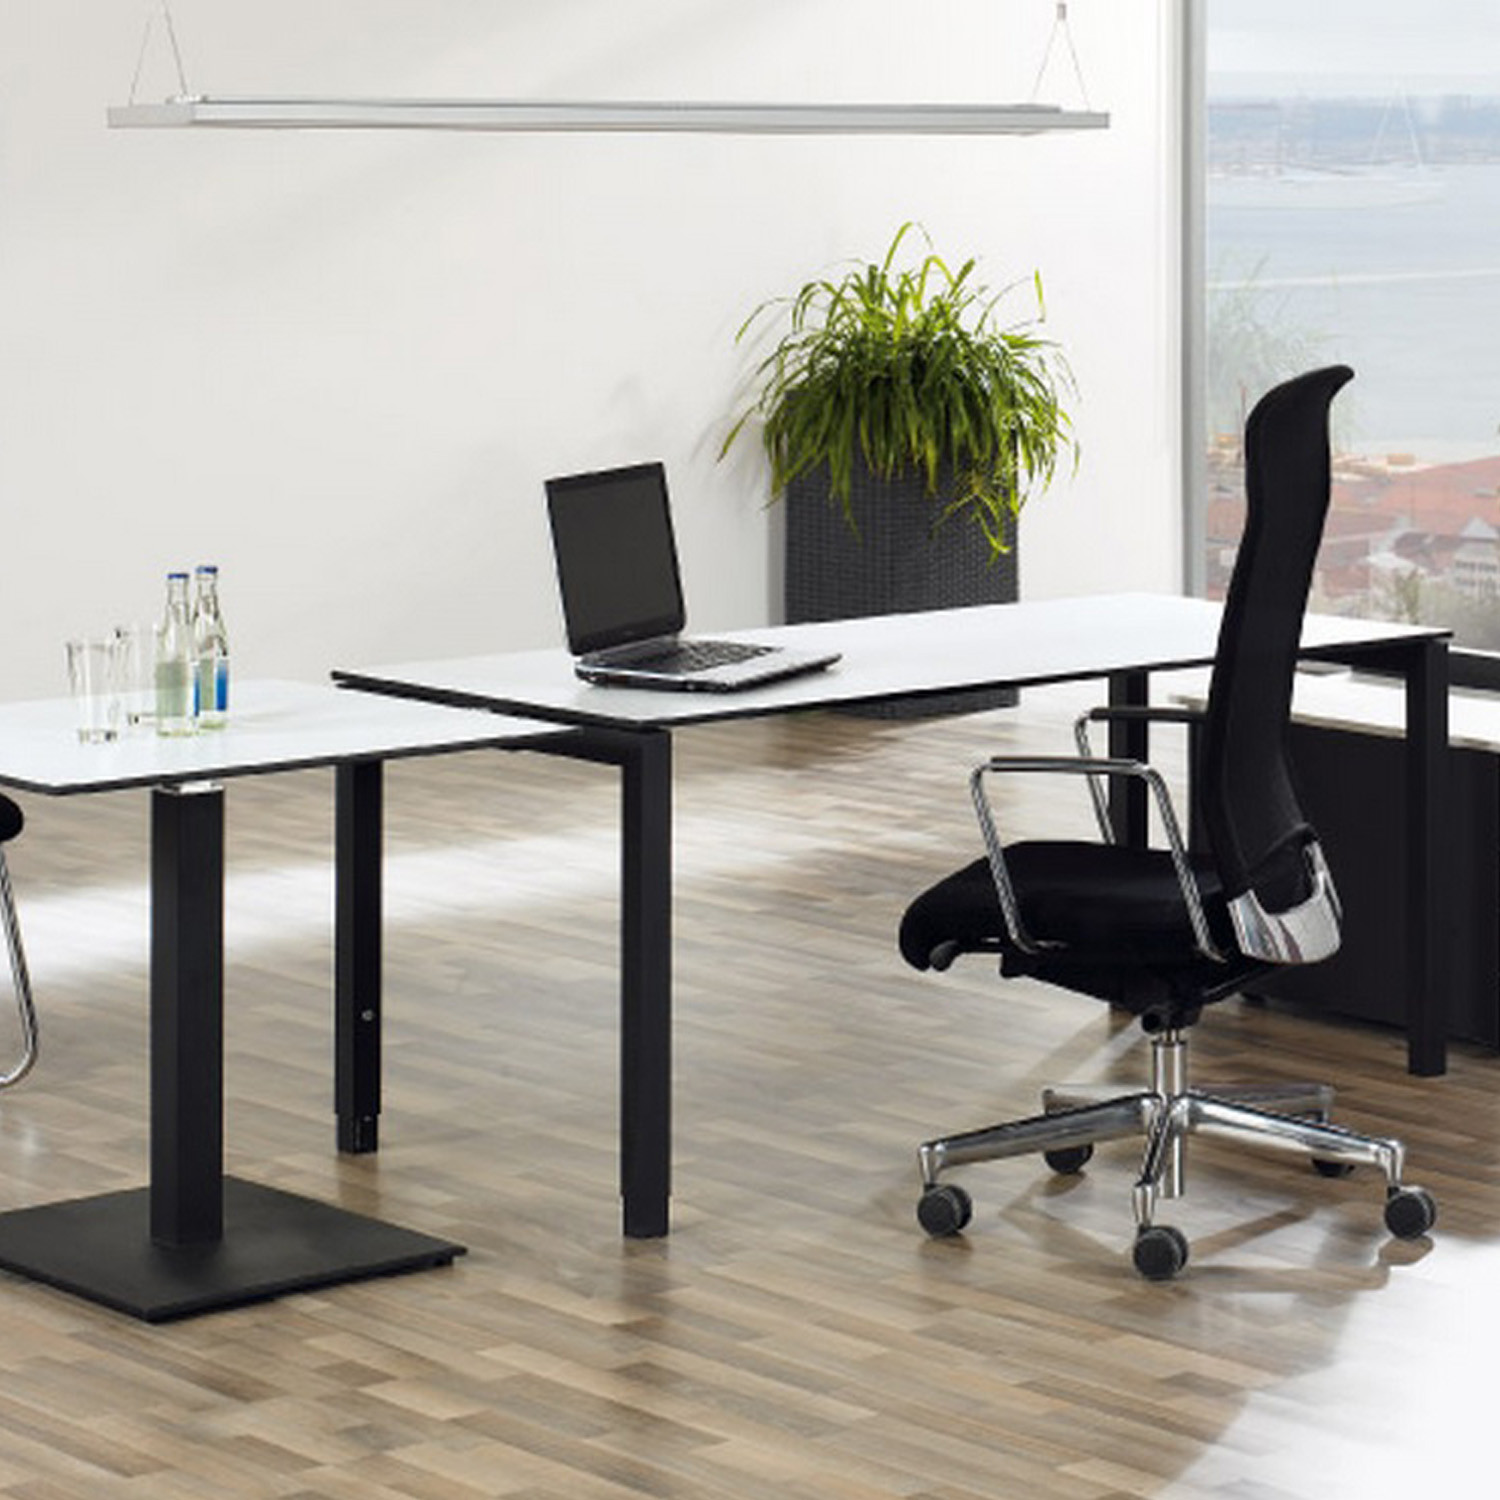 TriASS Desks by Assmann